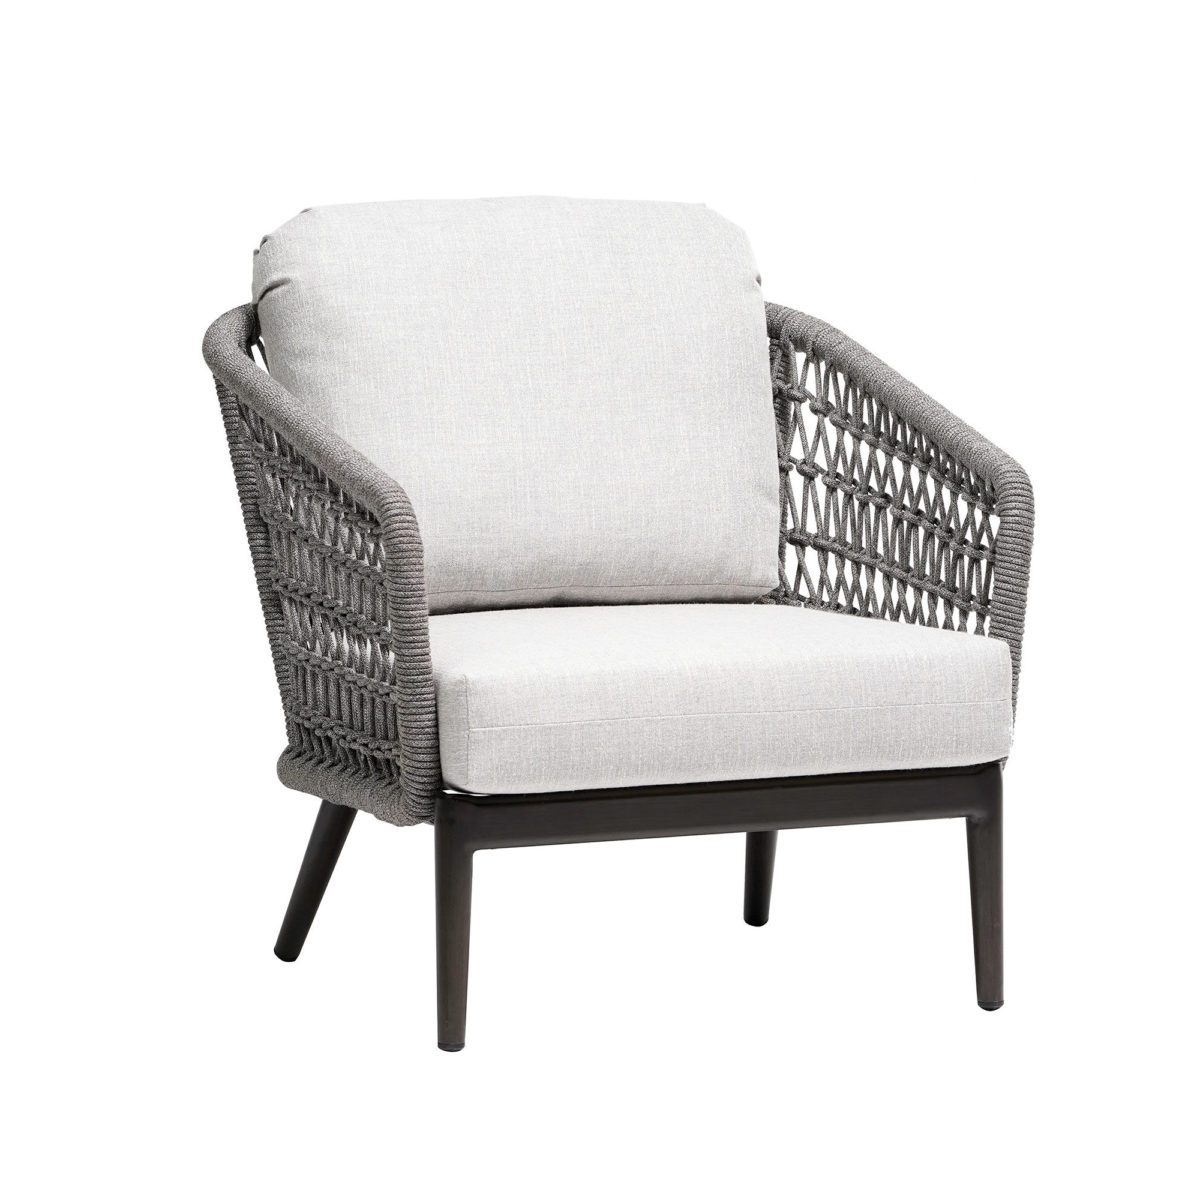 The Poinciana club chair with cream cushions and grey rope backing.